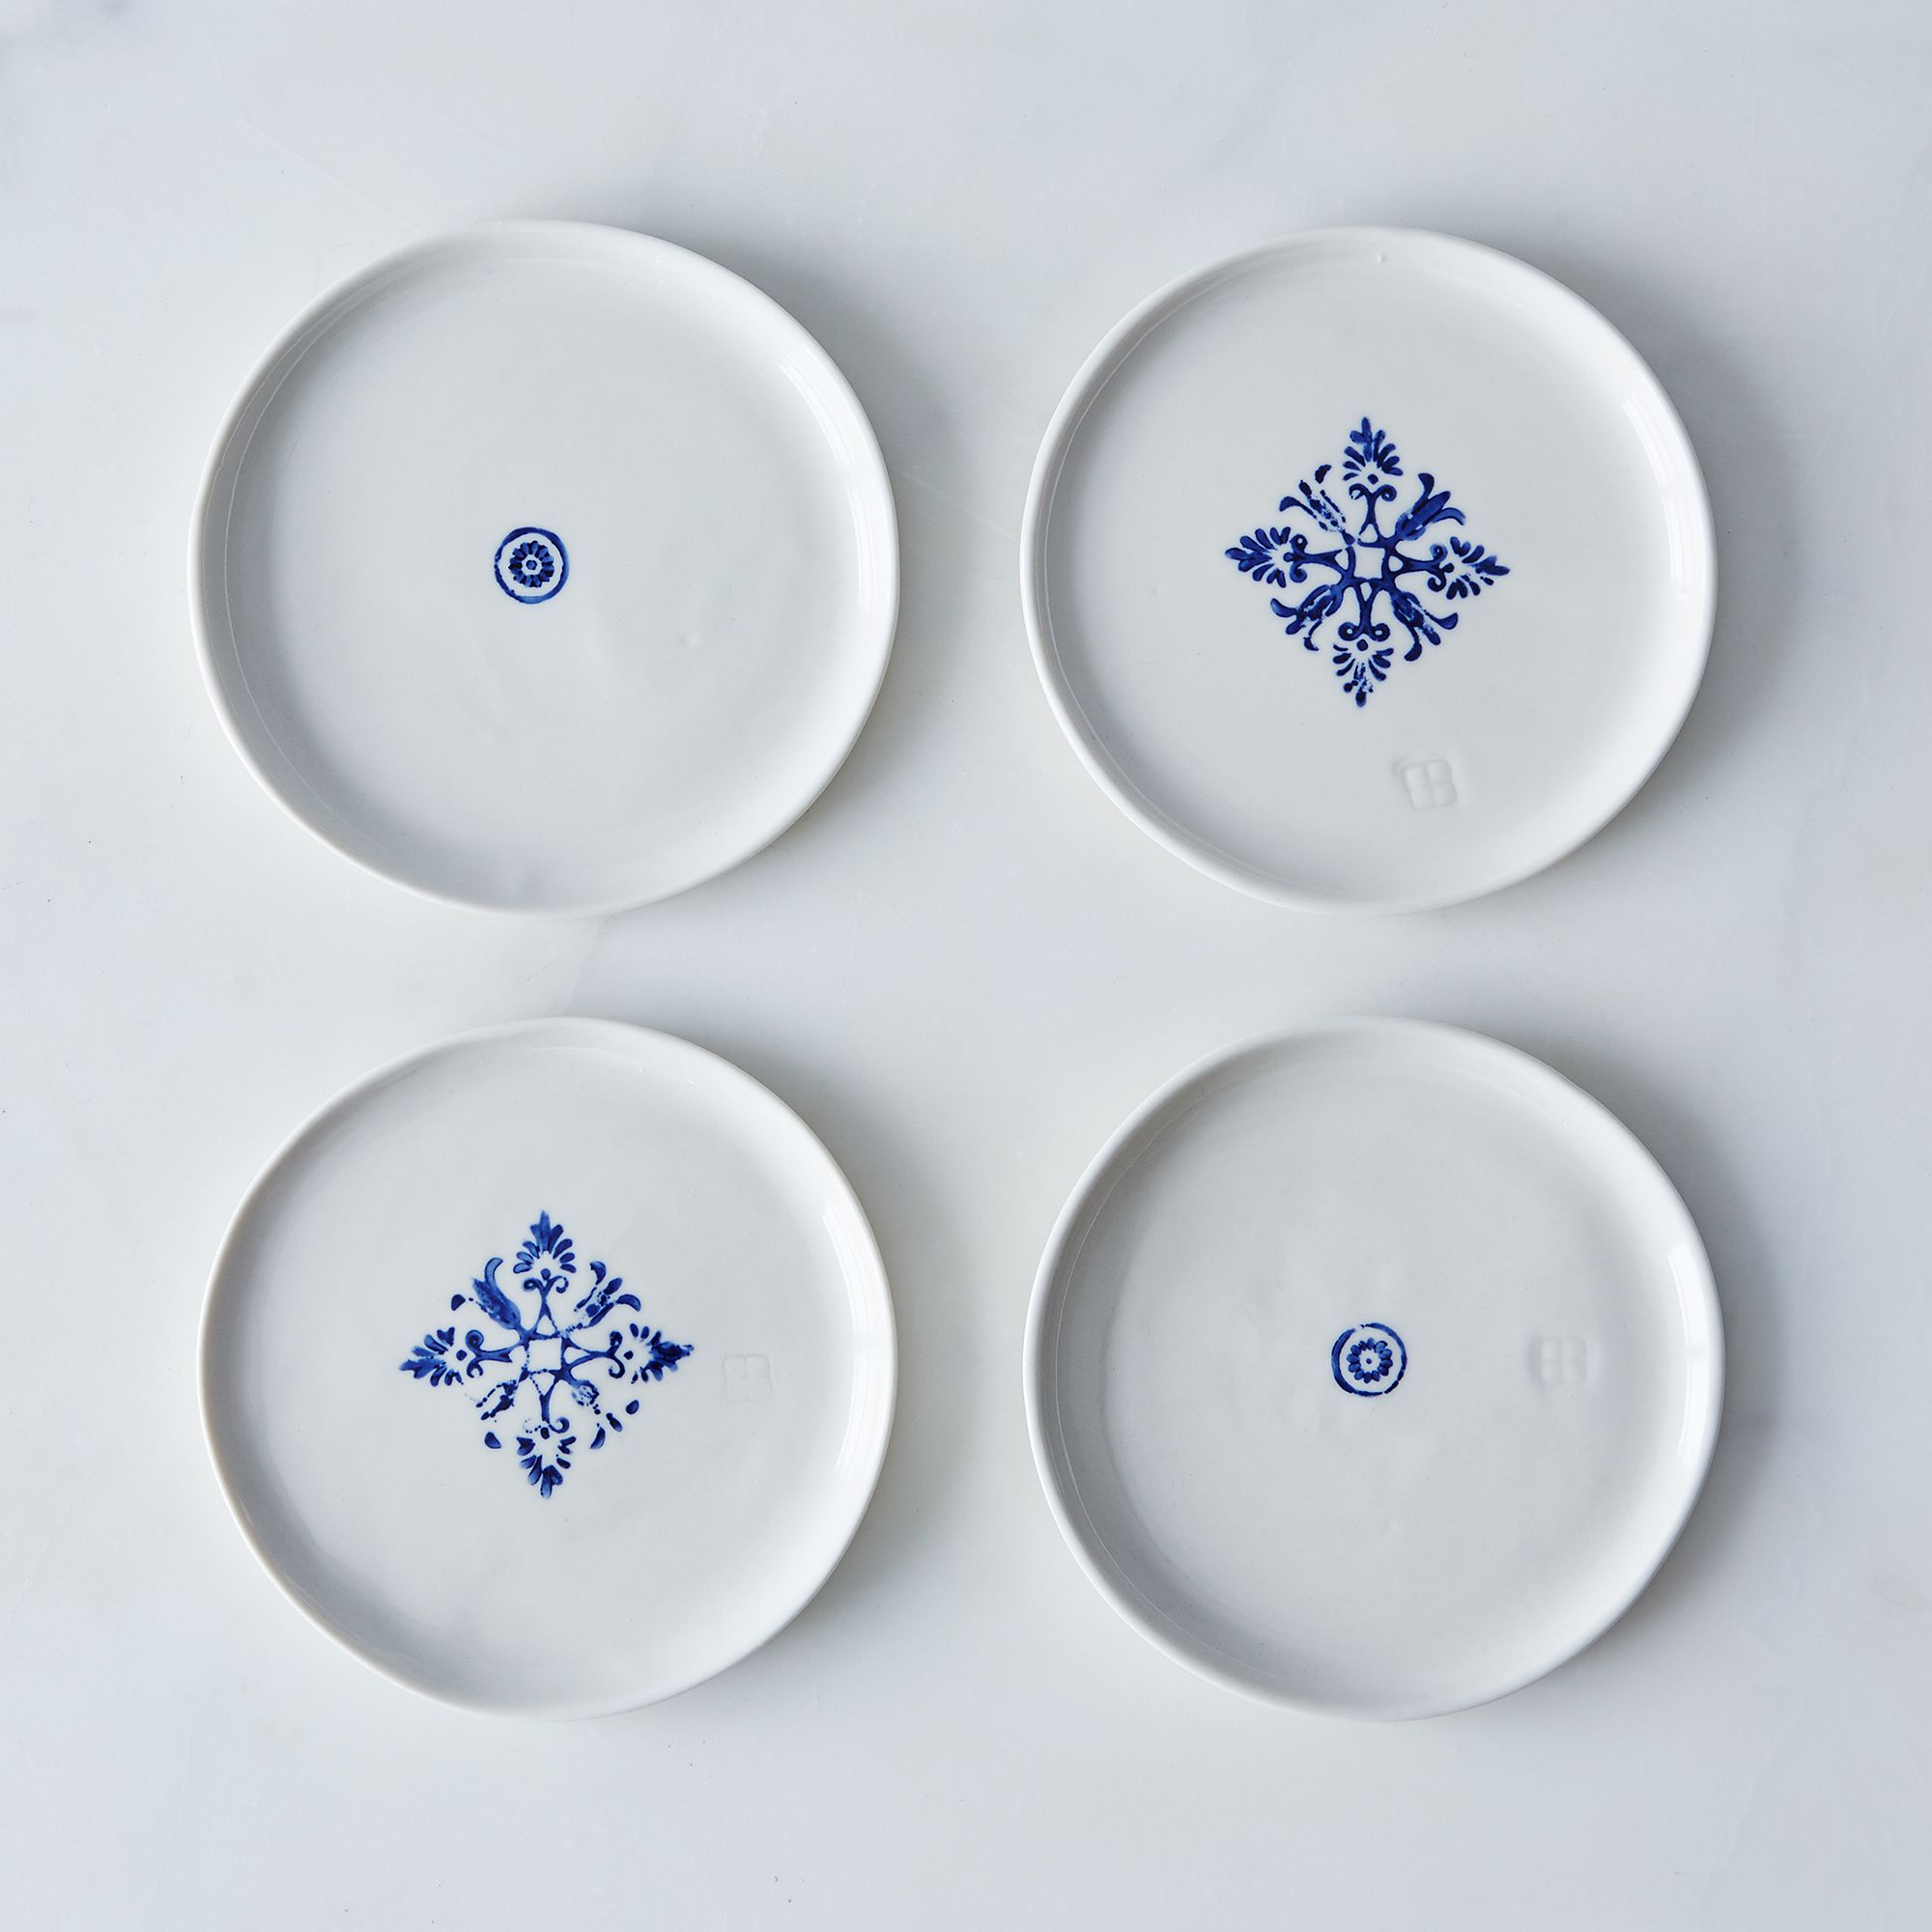 2dddd724 a0f8 11e5 a190 0ef7535729df  2015 0325 art et manufacture dessert plates set of 4 family mark weinberg 0024